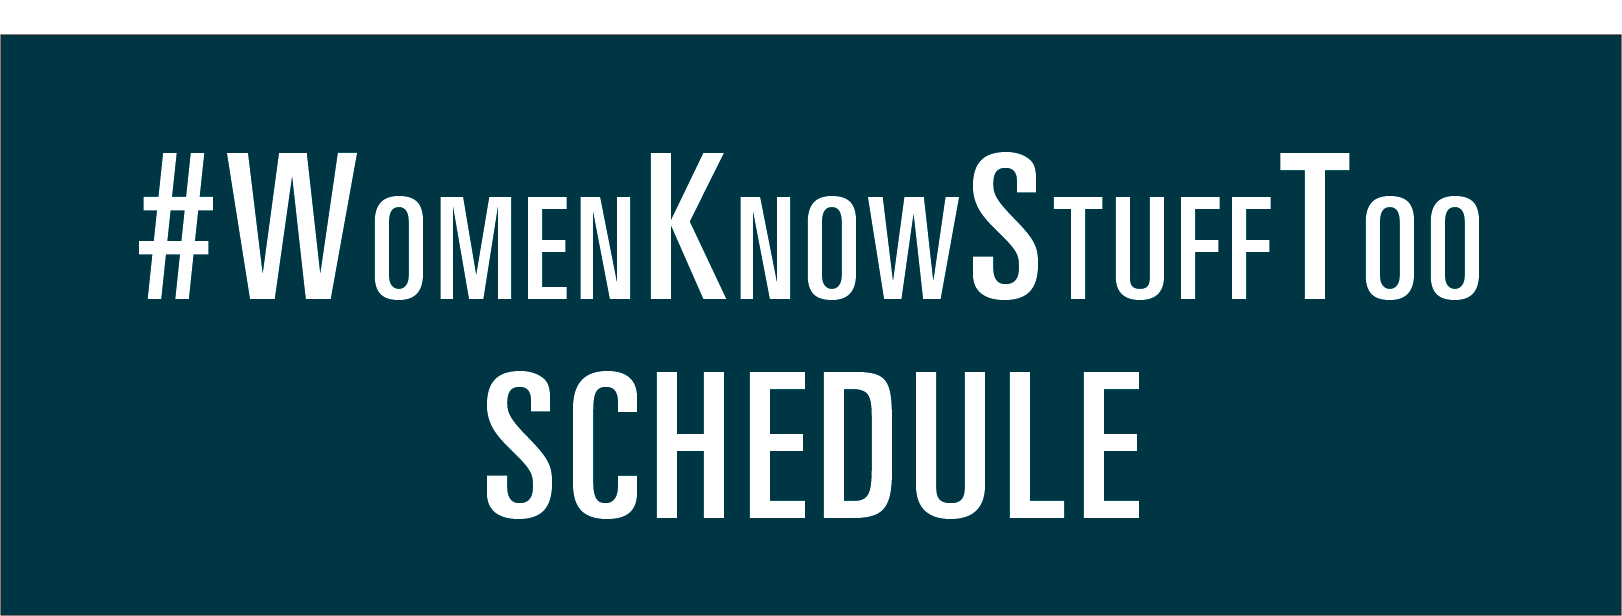 Link tile for Women Know Stuff Too Schedule